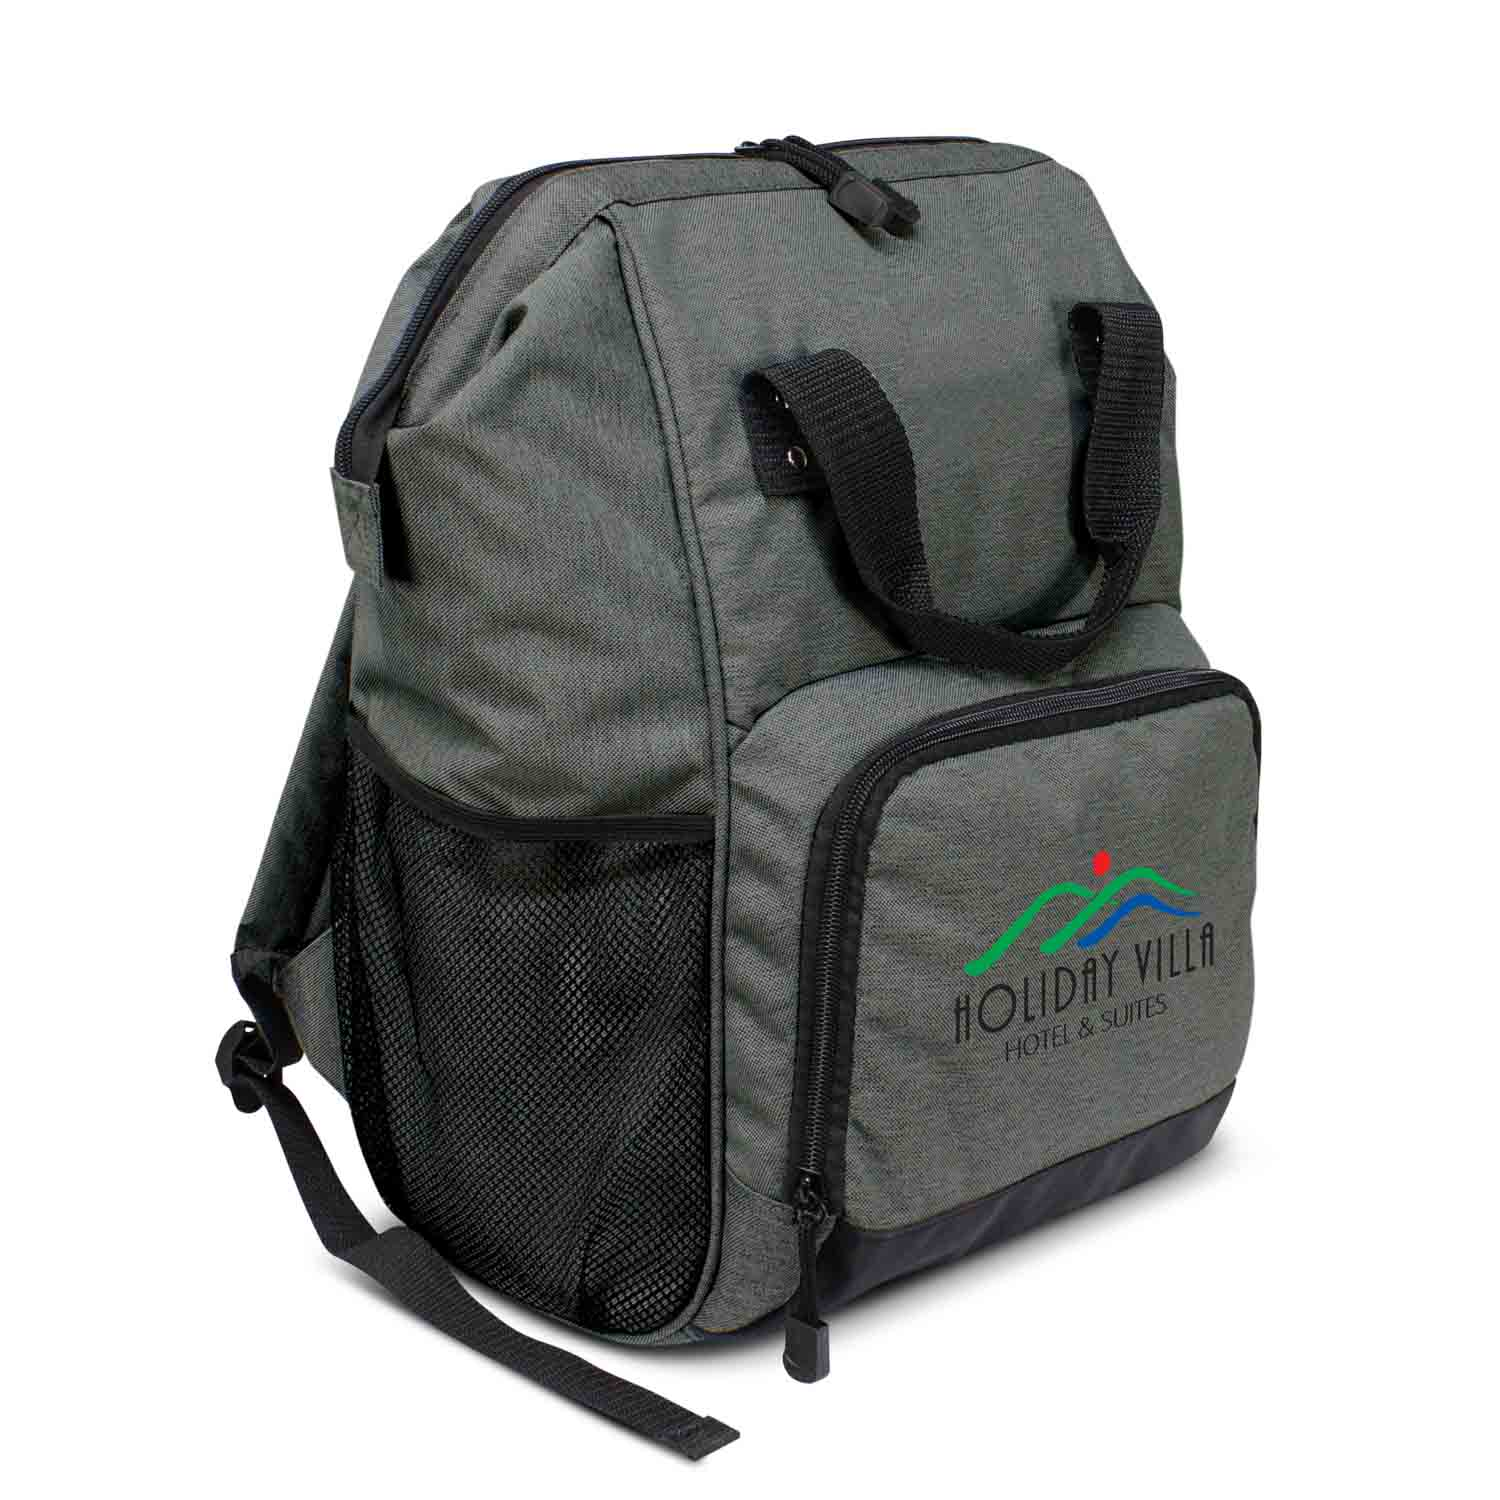 Promotional Coronet Cooler Backpack in Perth, Australia